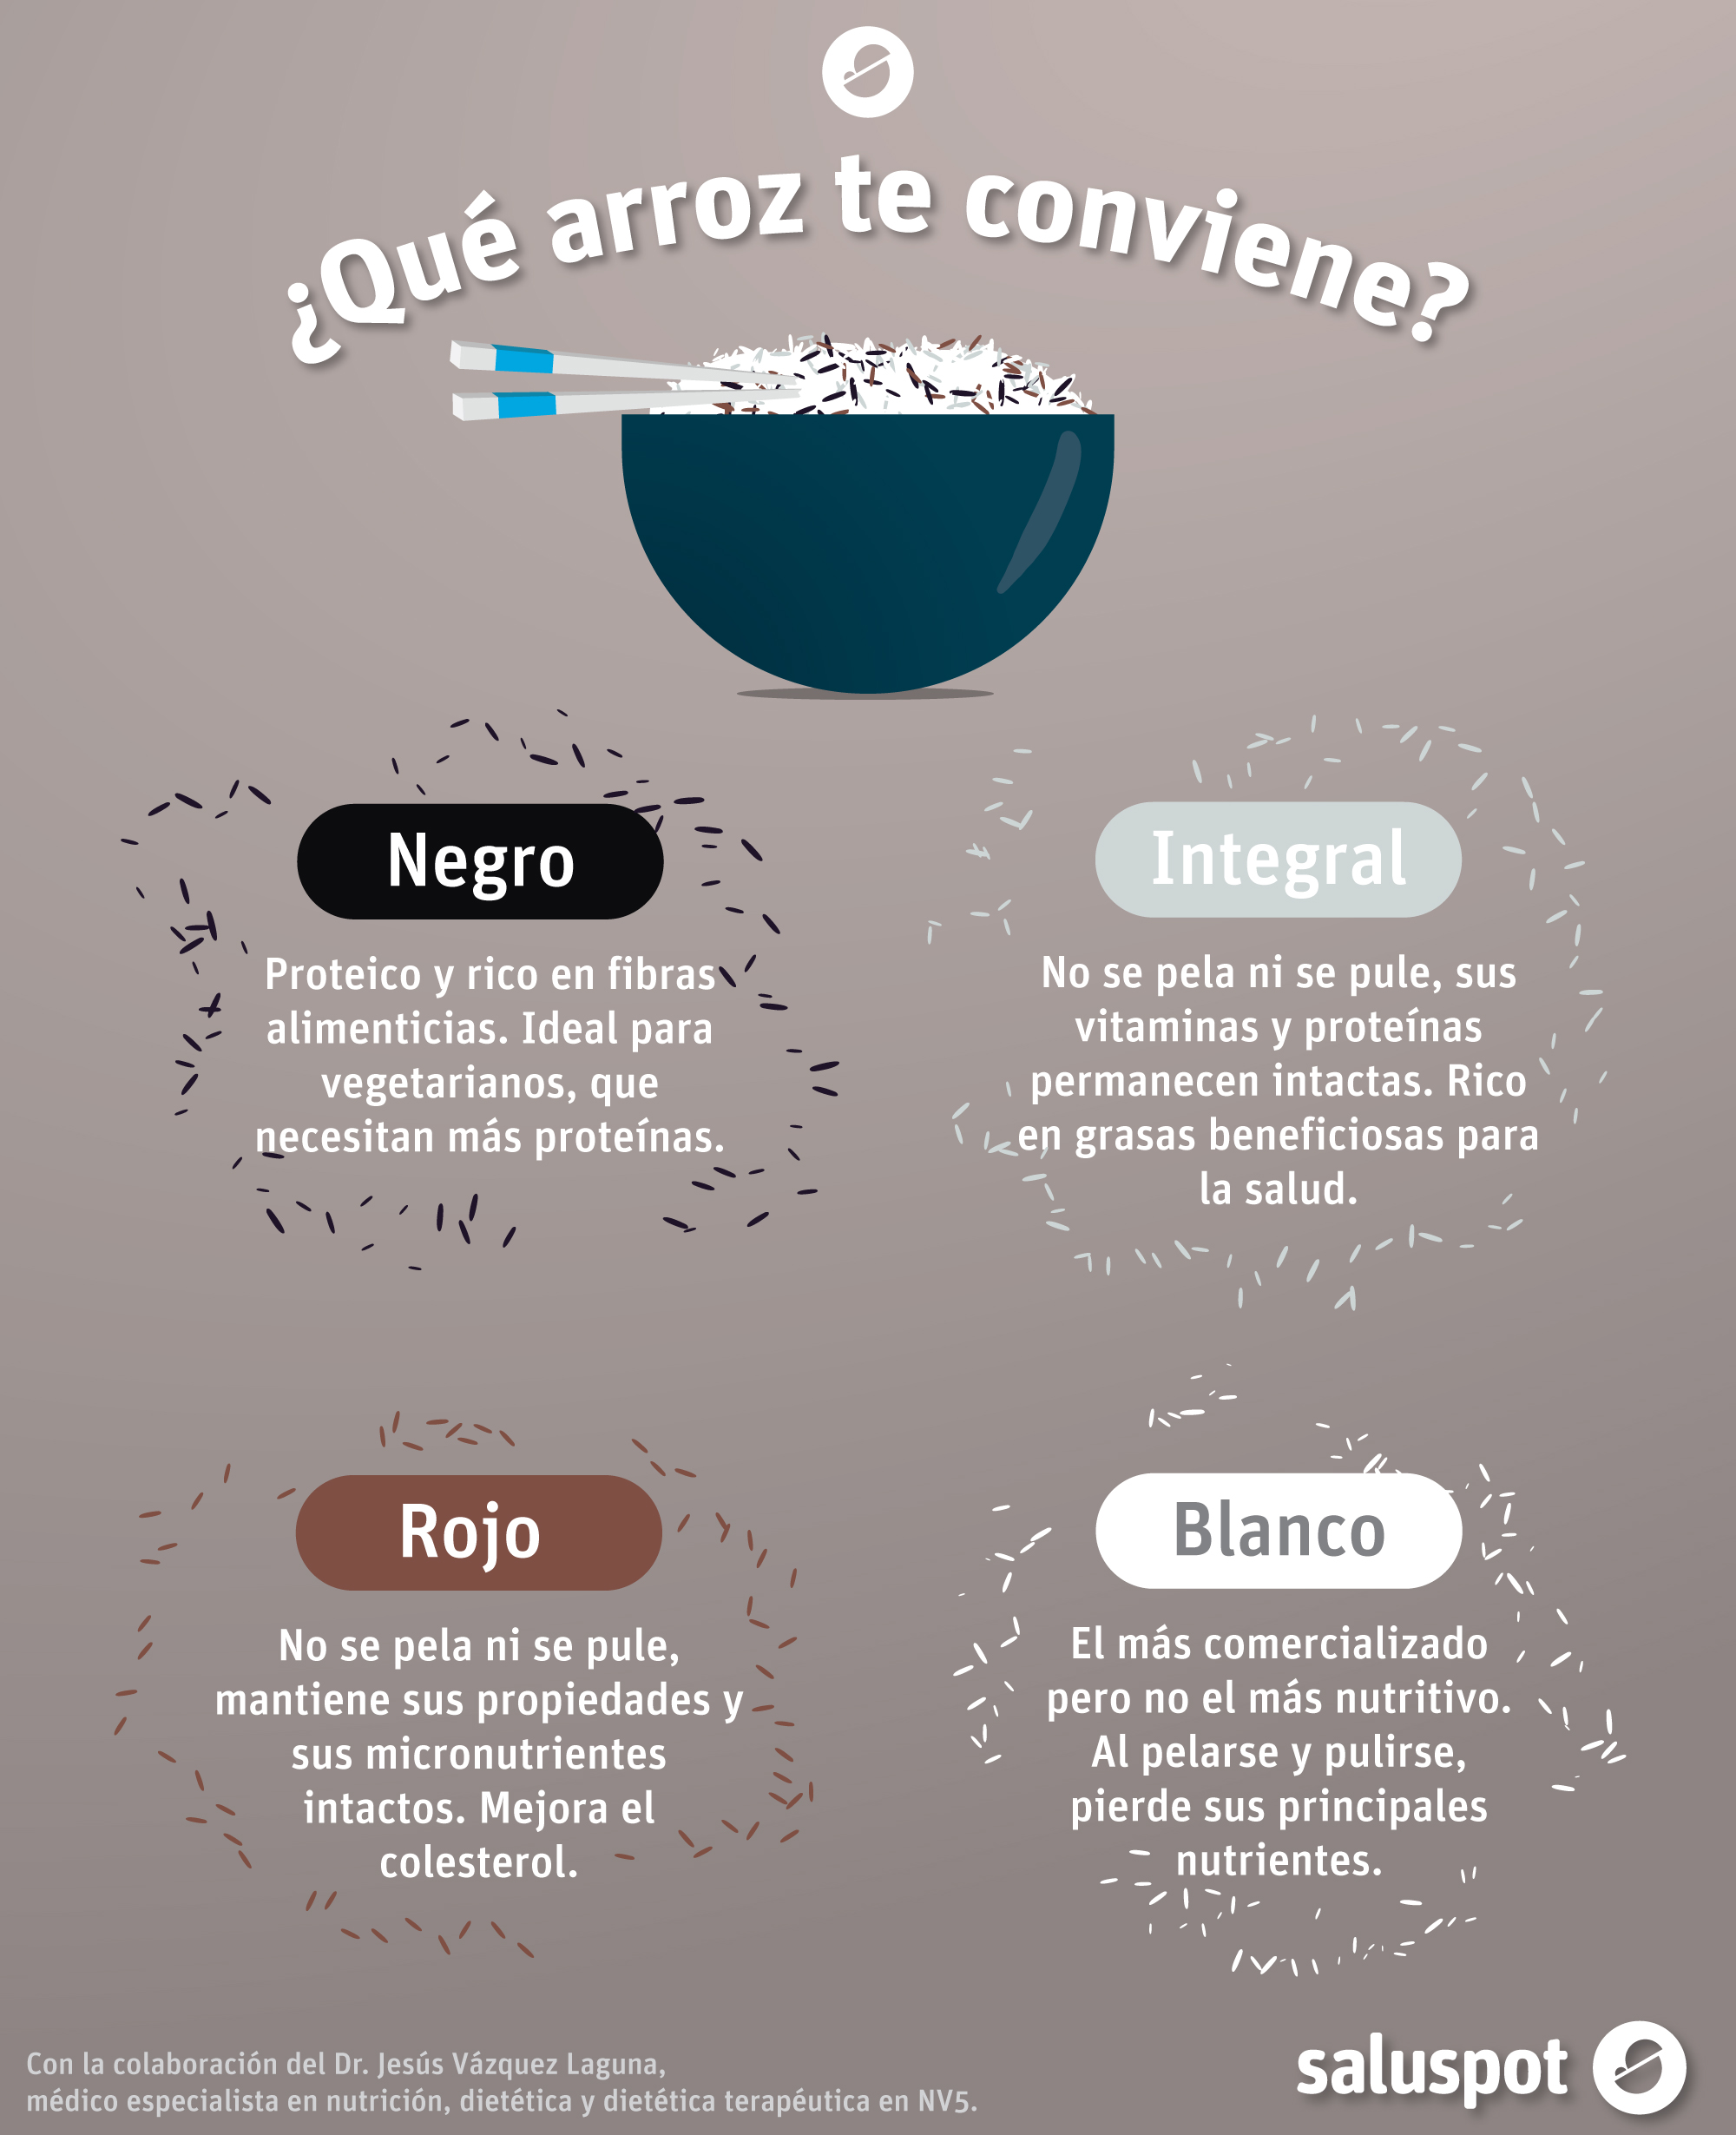 Tipos de arroz y sus beneficios